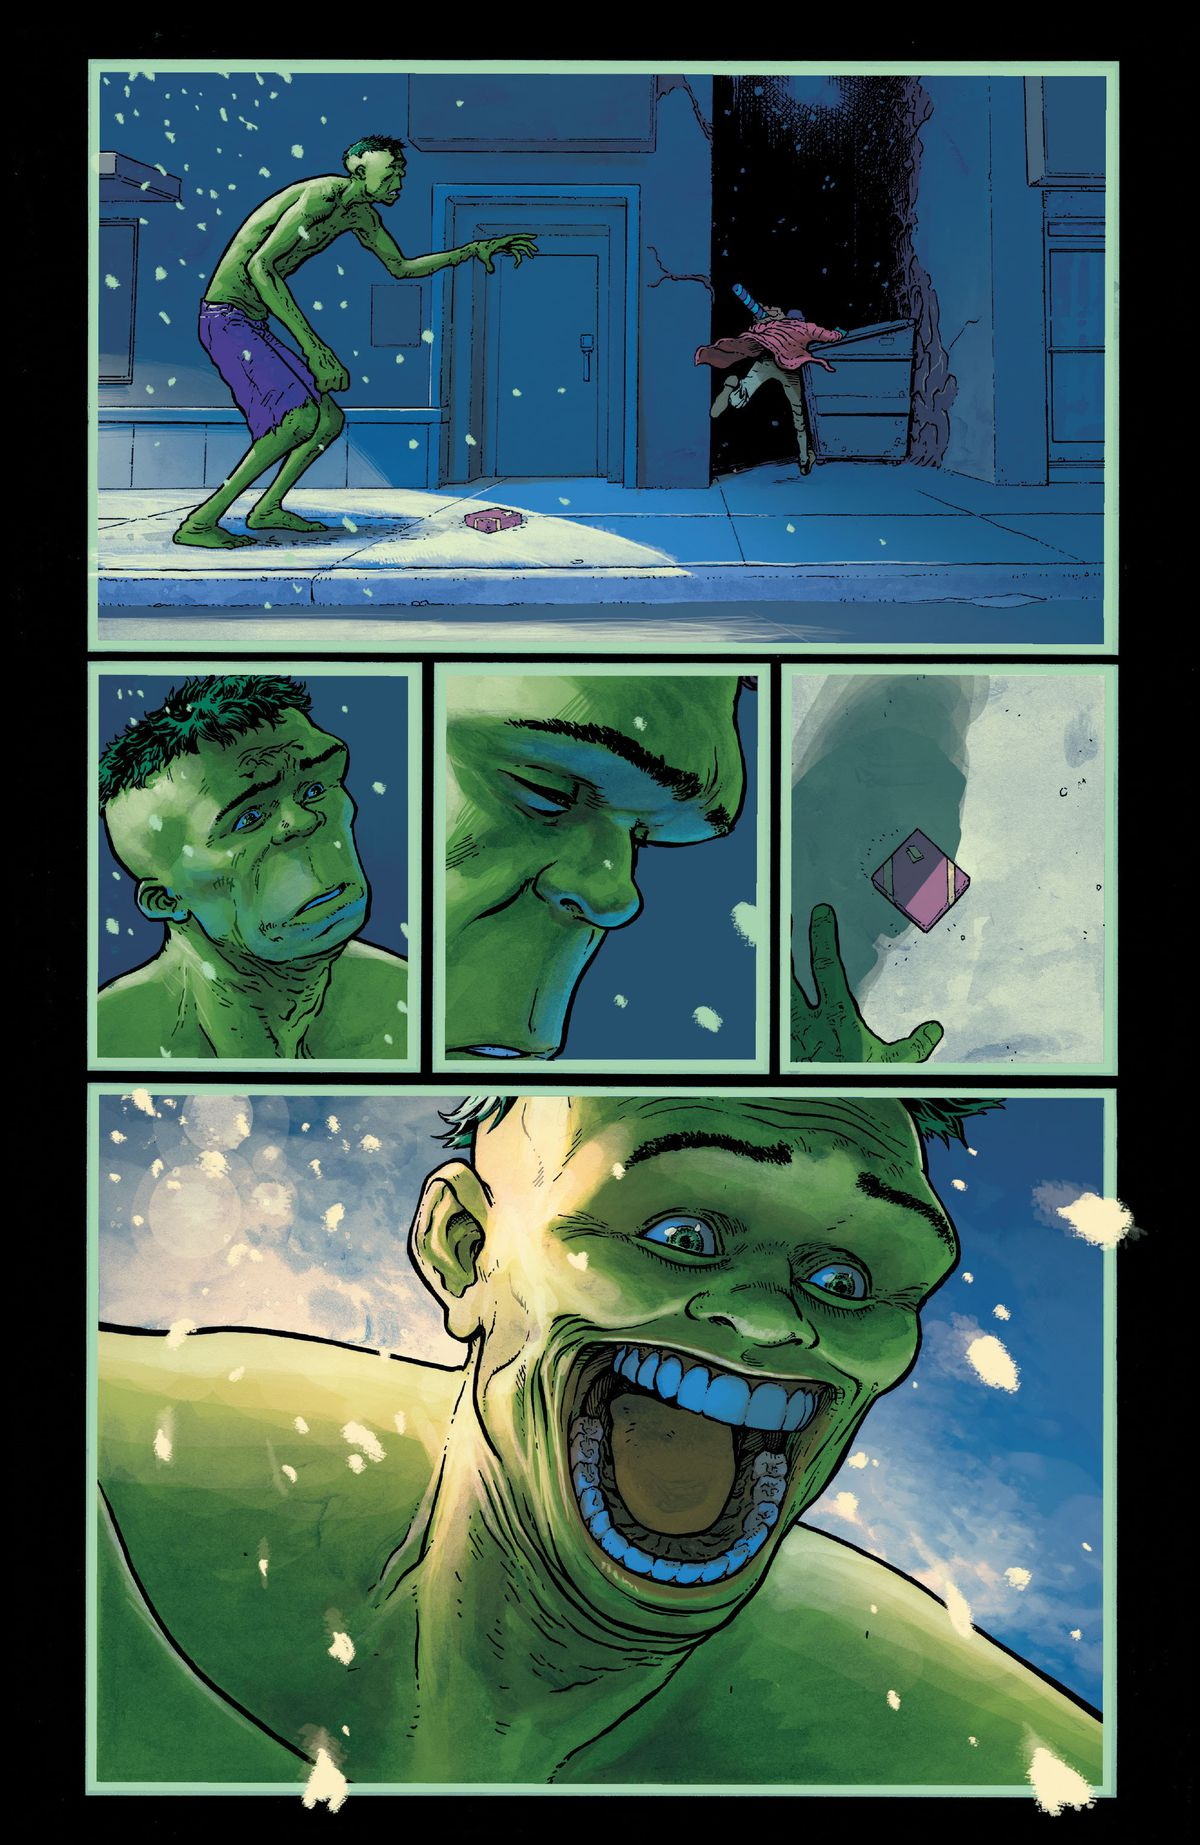 A late night Christmas shopper on a snowy NYC street flees from the Hulk, leaving a wrapped present behind. The Hulk reacts sadly at the man's fear, but then grins huge and grotesquely when he notices the dropped present, in King in Black: Immortal Hulk, Marvel Comics (2020).